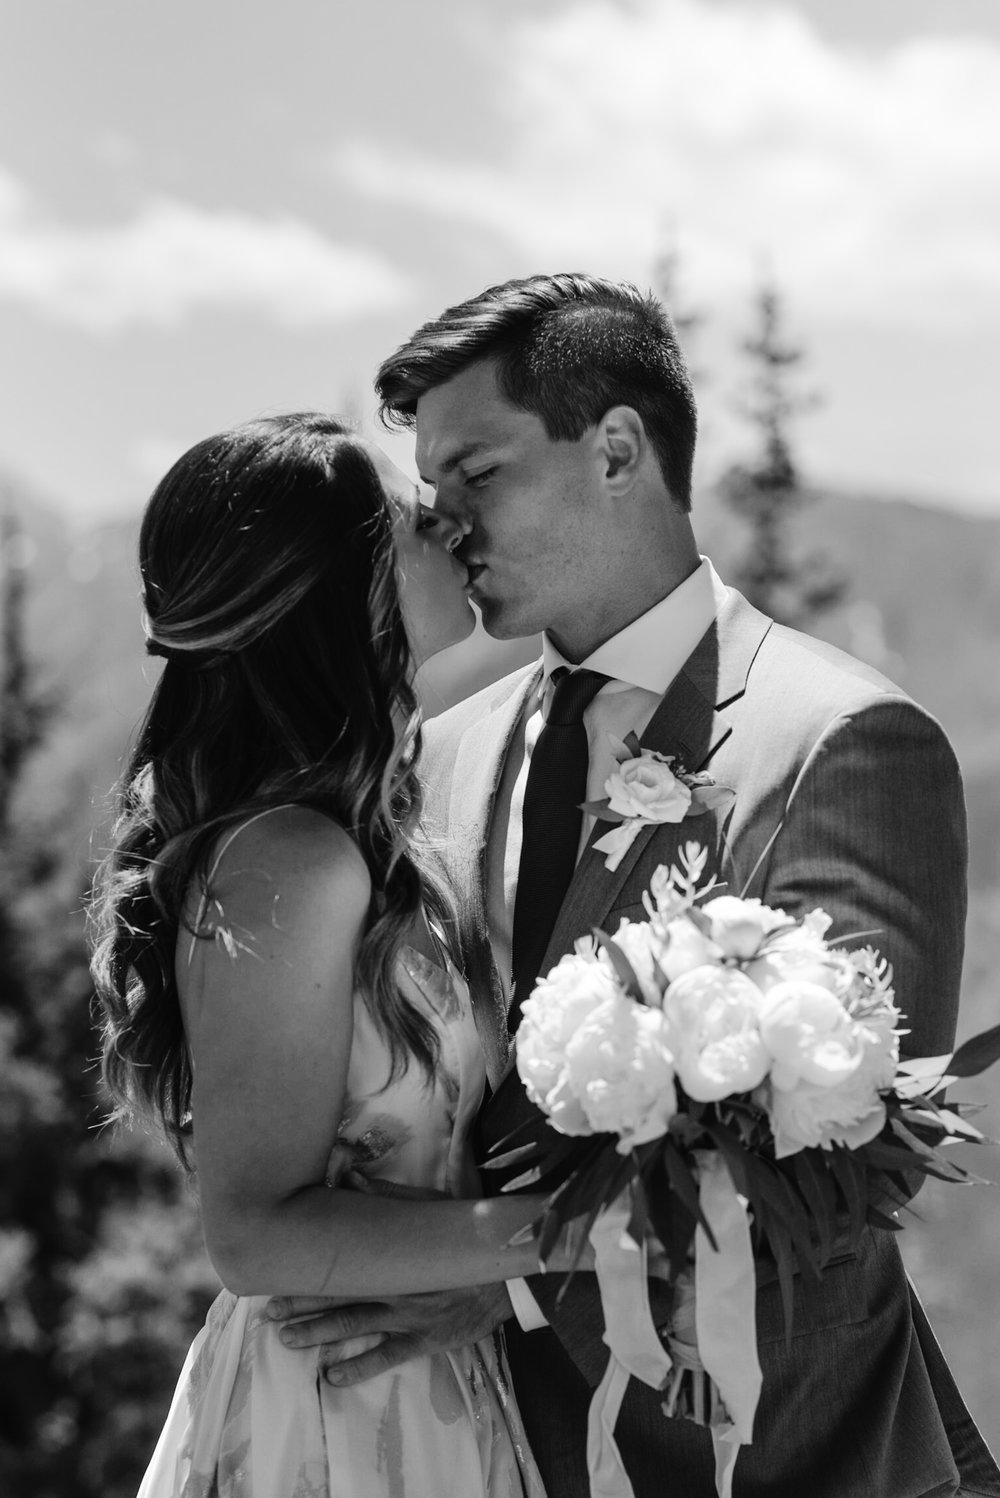 Aspen, Colorado elopement photographer. The Little Nell wedding.